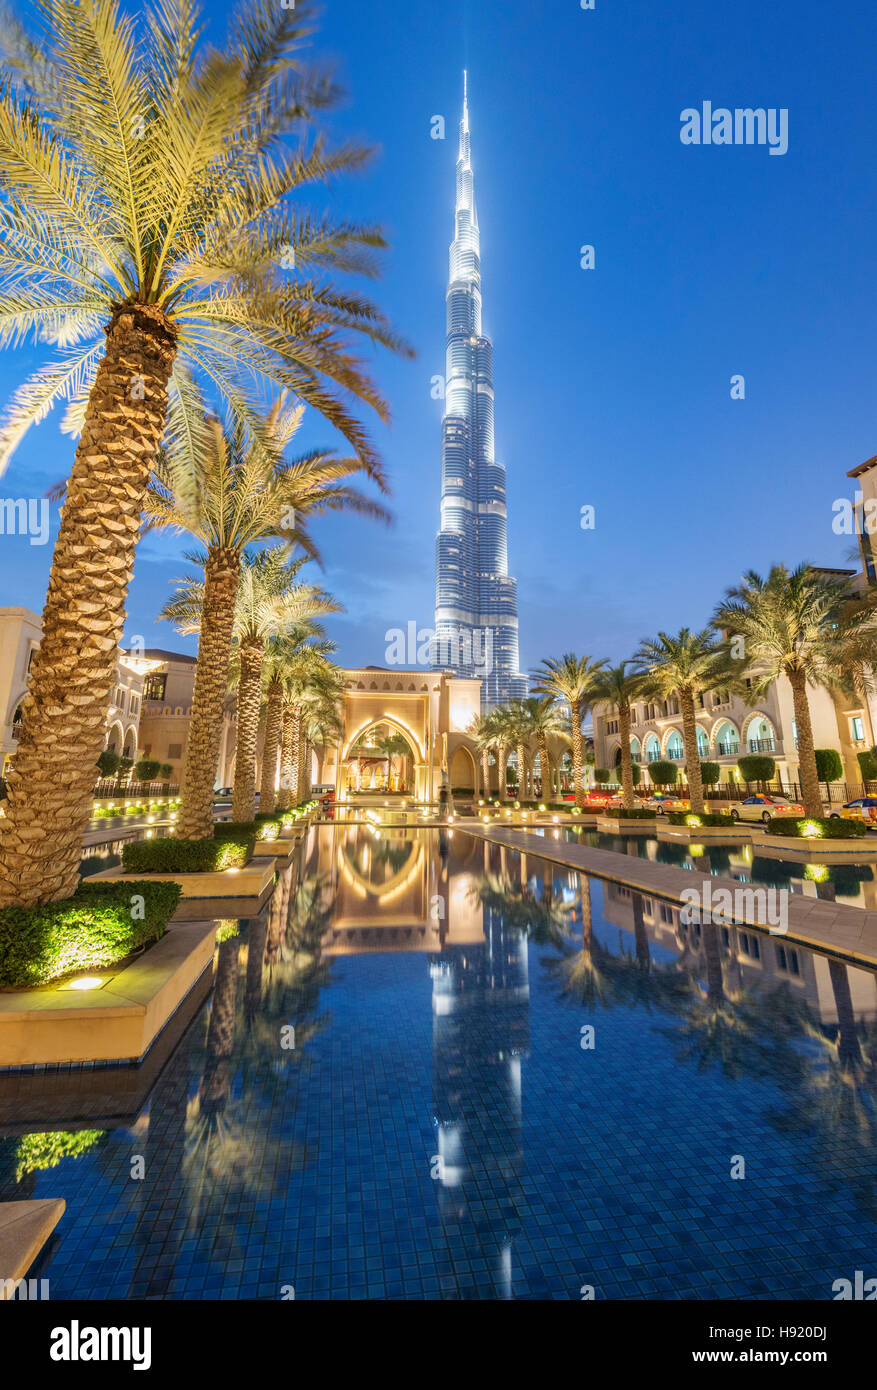 View of Burj Khalifa and Souq al Bahar at night in Downtown Dubai in United Arab Emirates - Stock Image